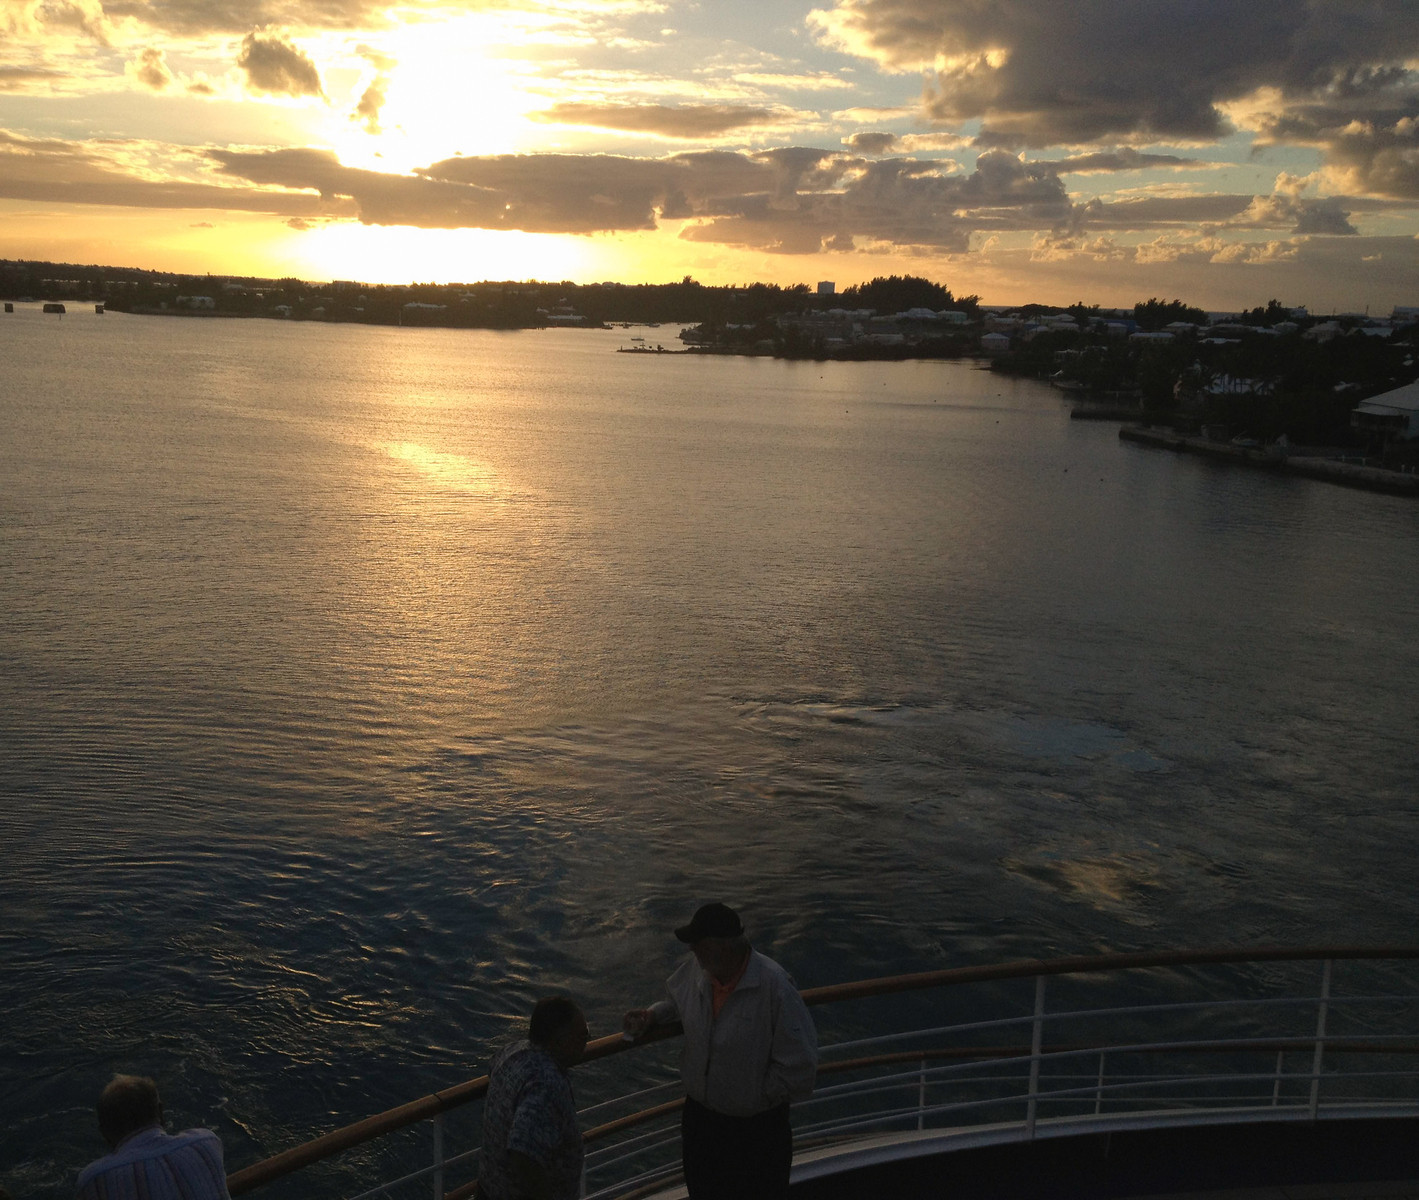 Sunset over the water in Bermuda